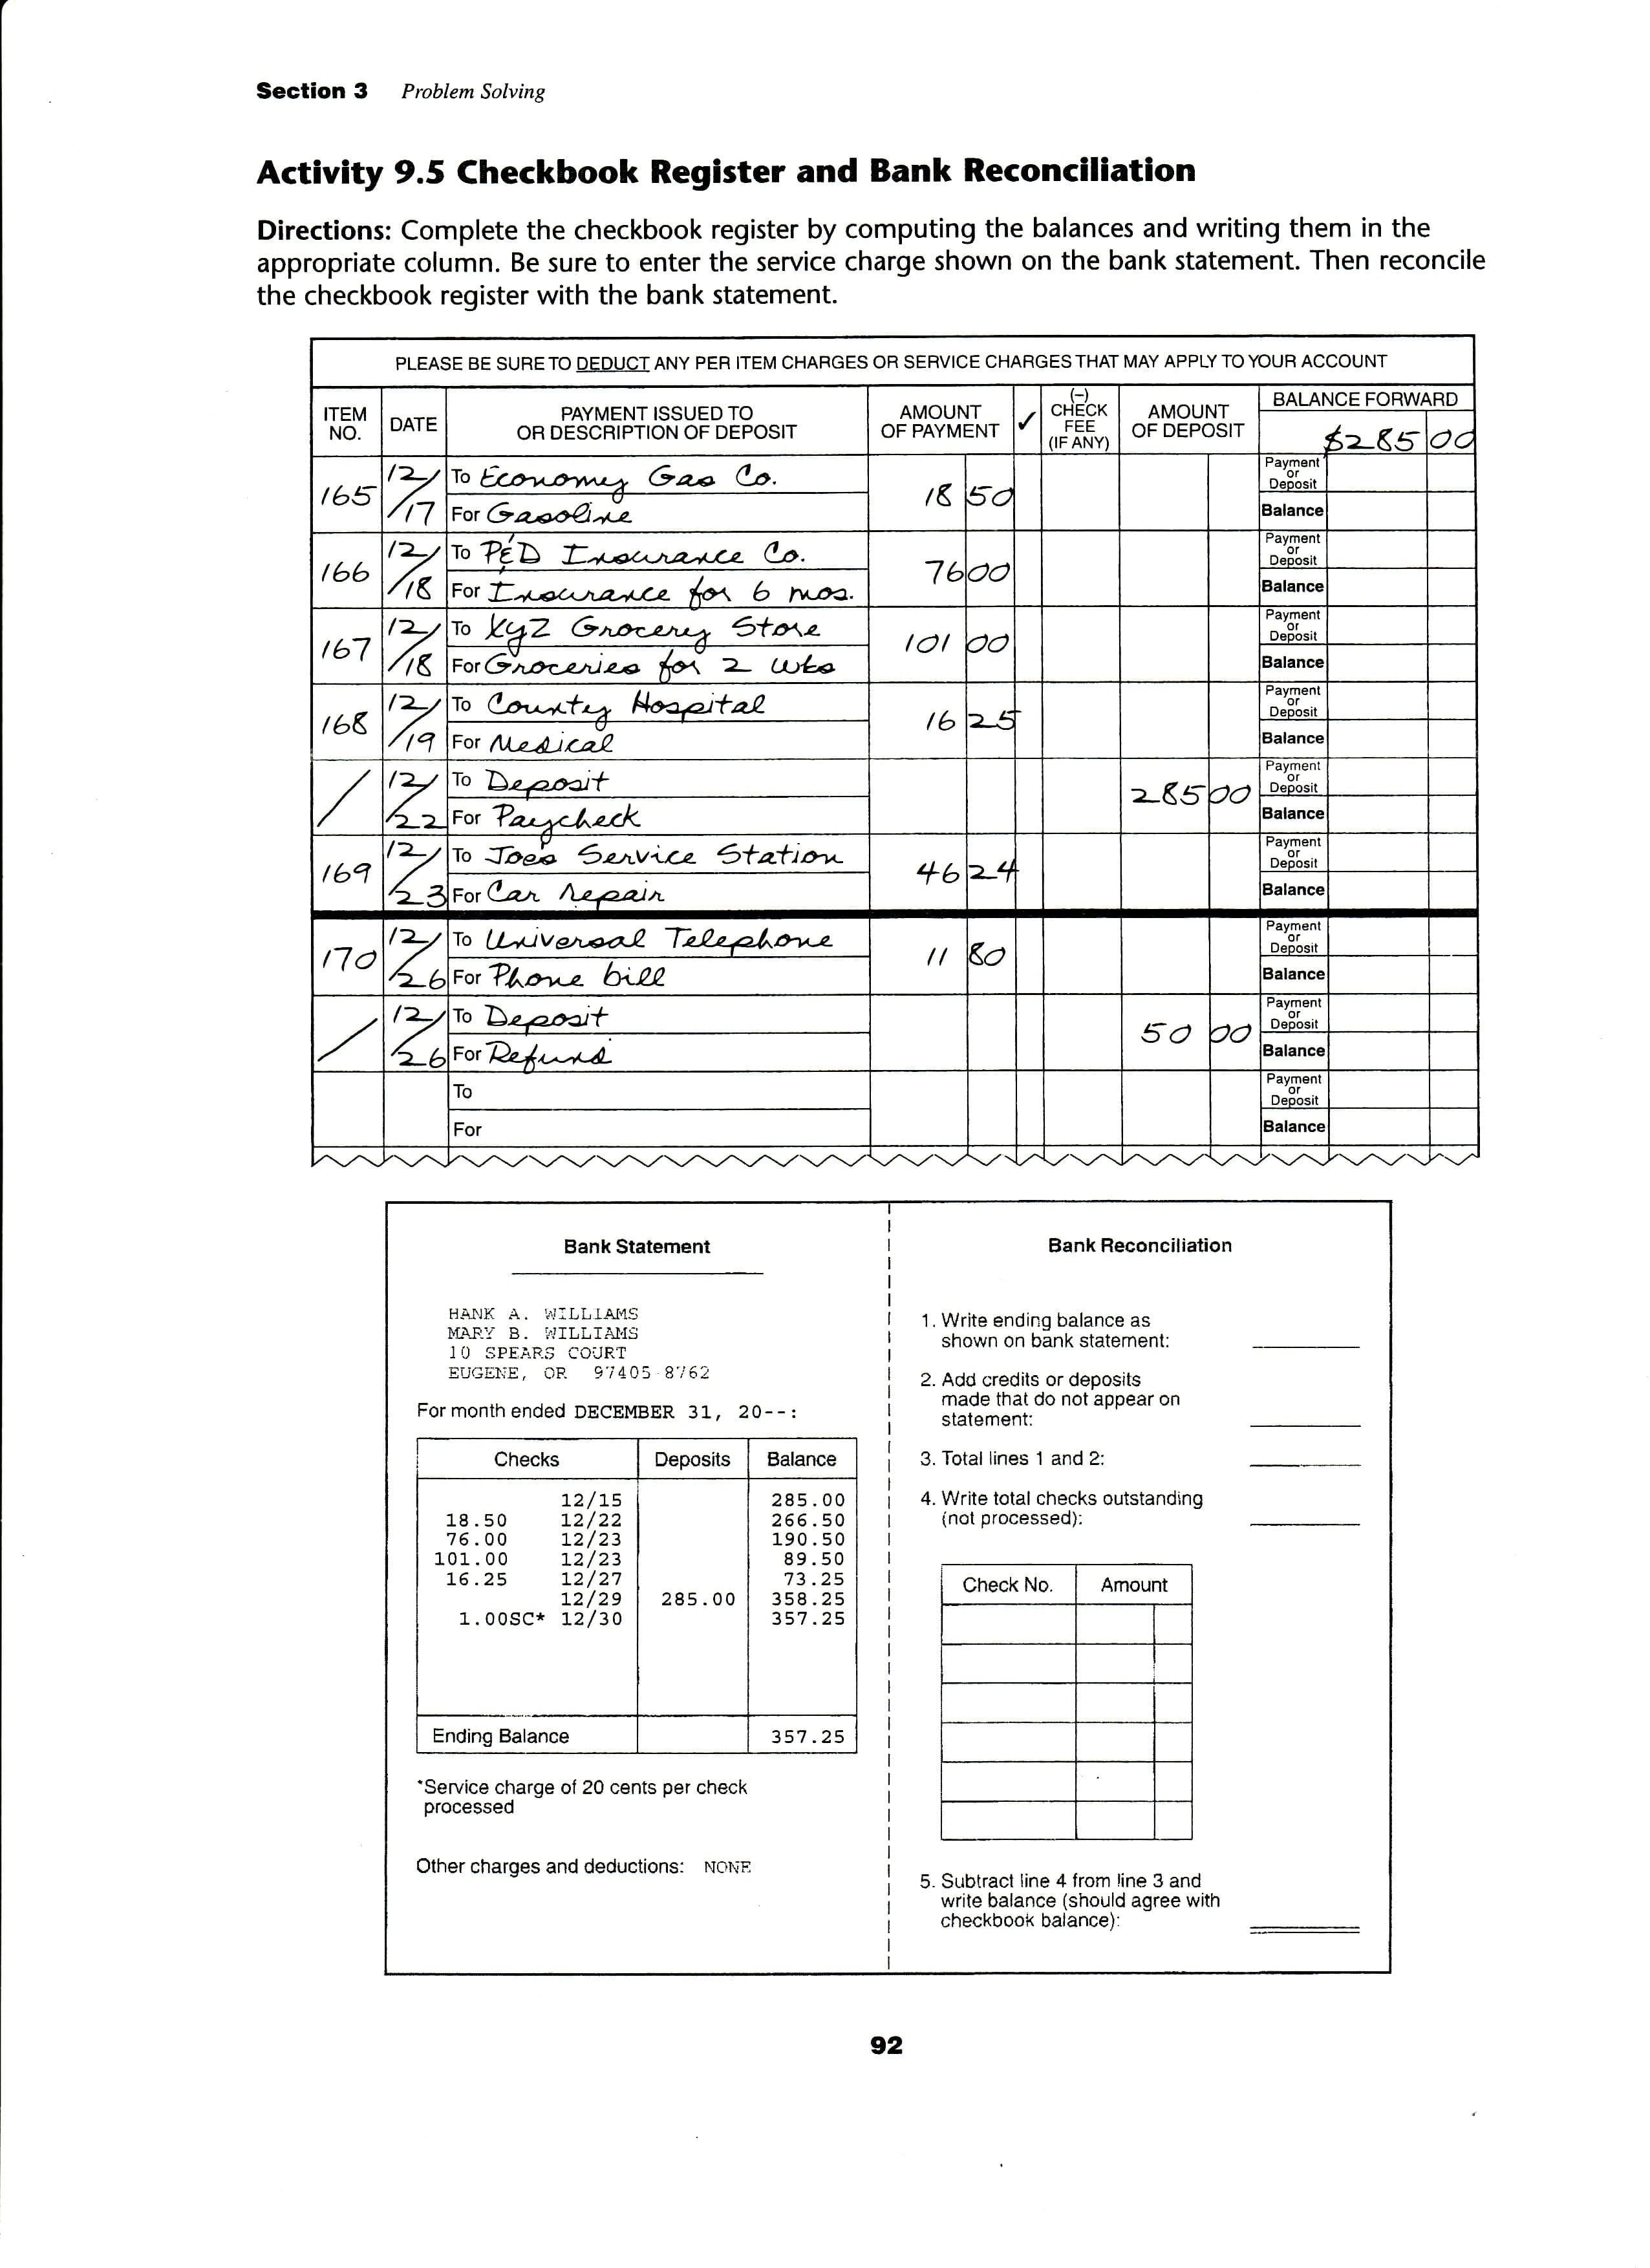 Reconciling An Account Worksheet Answers